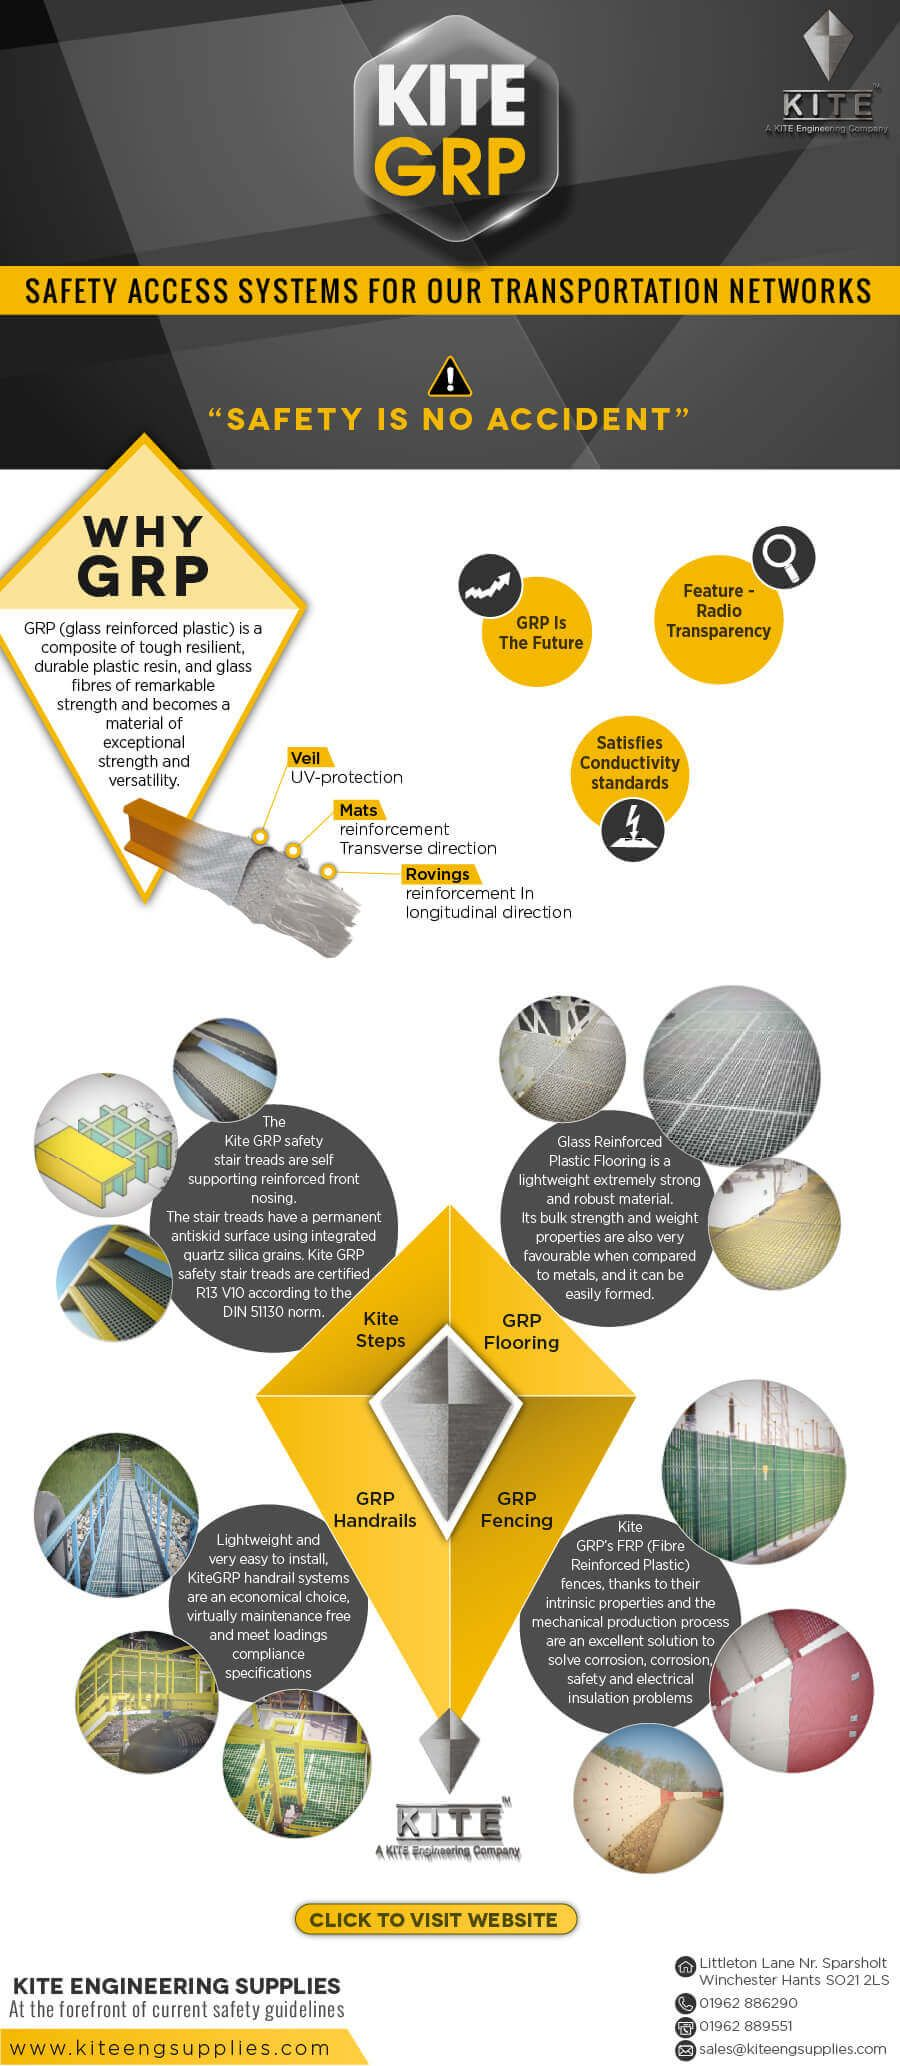 Kite GRP Safety Access Systems Infographic Science